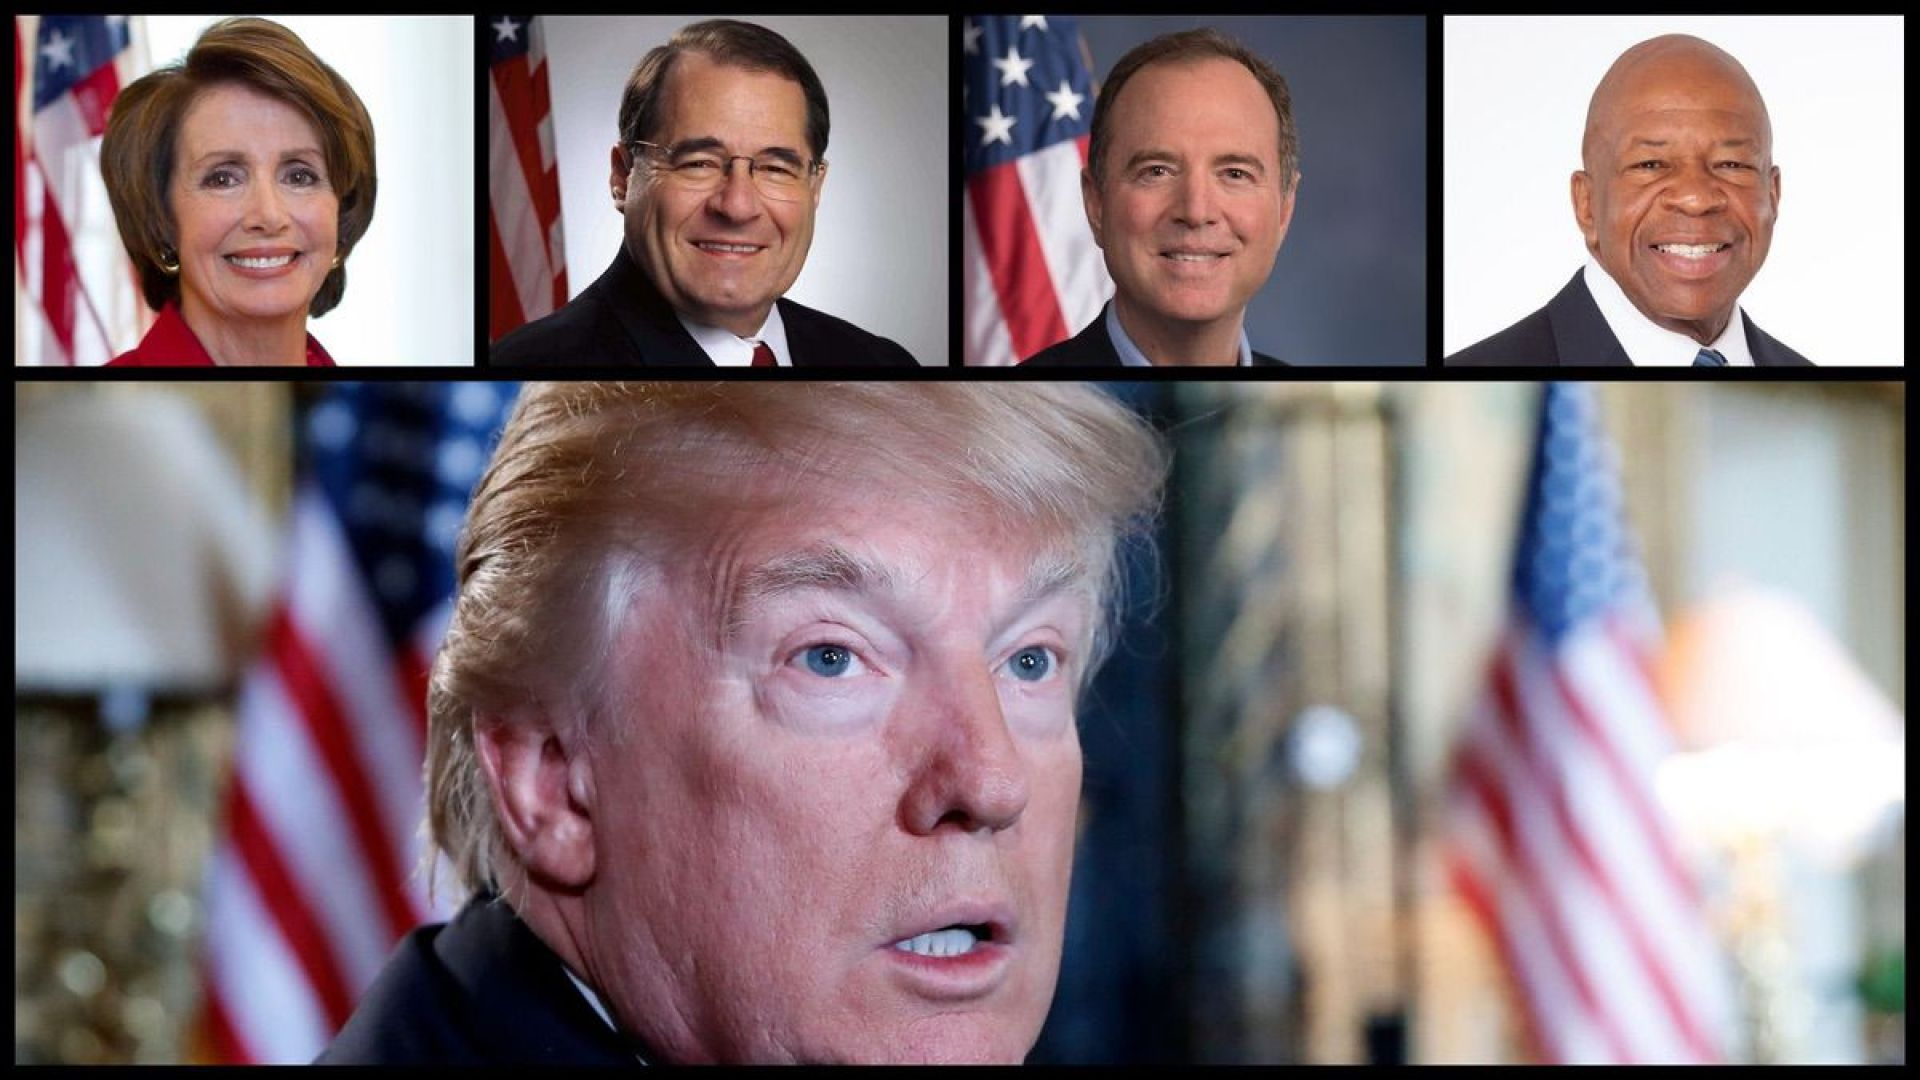 Speaker of the House Nancy Pelosi (D-CA), House Judiciary Chairman Jerry Nadler (D-NY), House Intelligence Chairman Adam Schiff (D-CA), House Oversight Chairman Elijah Cummings (D-MD), and President Donald Trump - Official Photos and AP